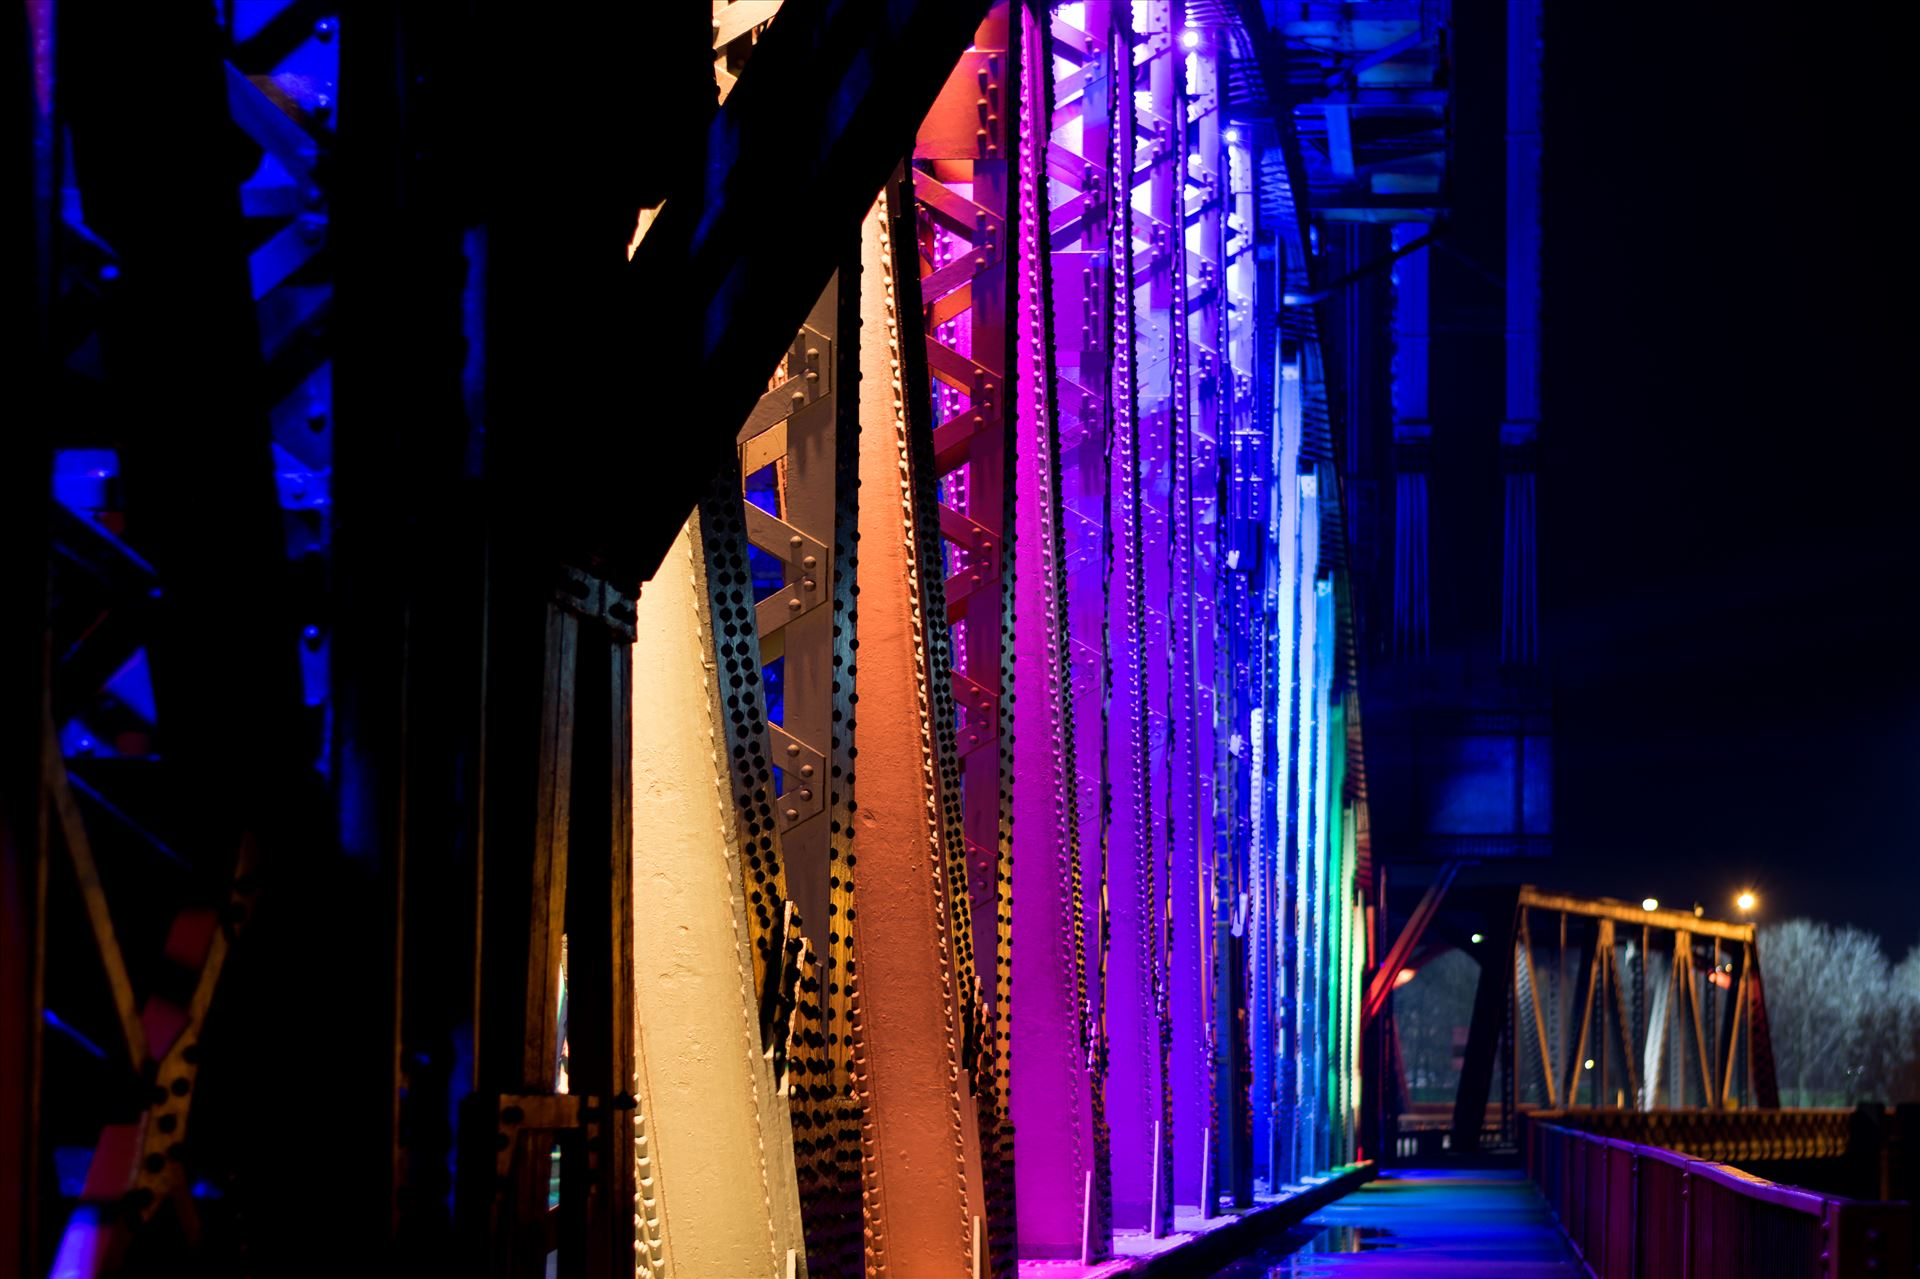 Newport Bridge Christmas Lights - Newport Bridge Rainbow Lights by AJ Stoves Photography